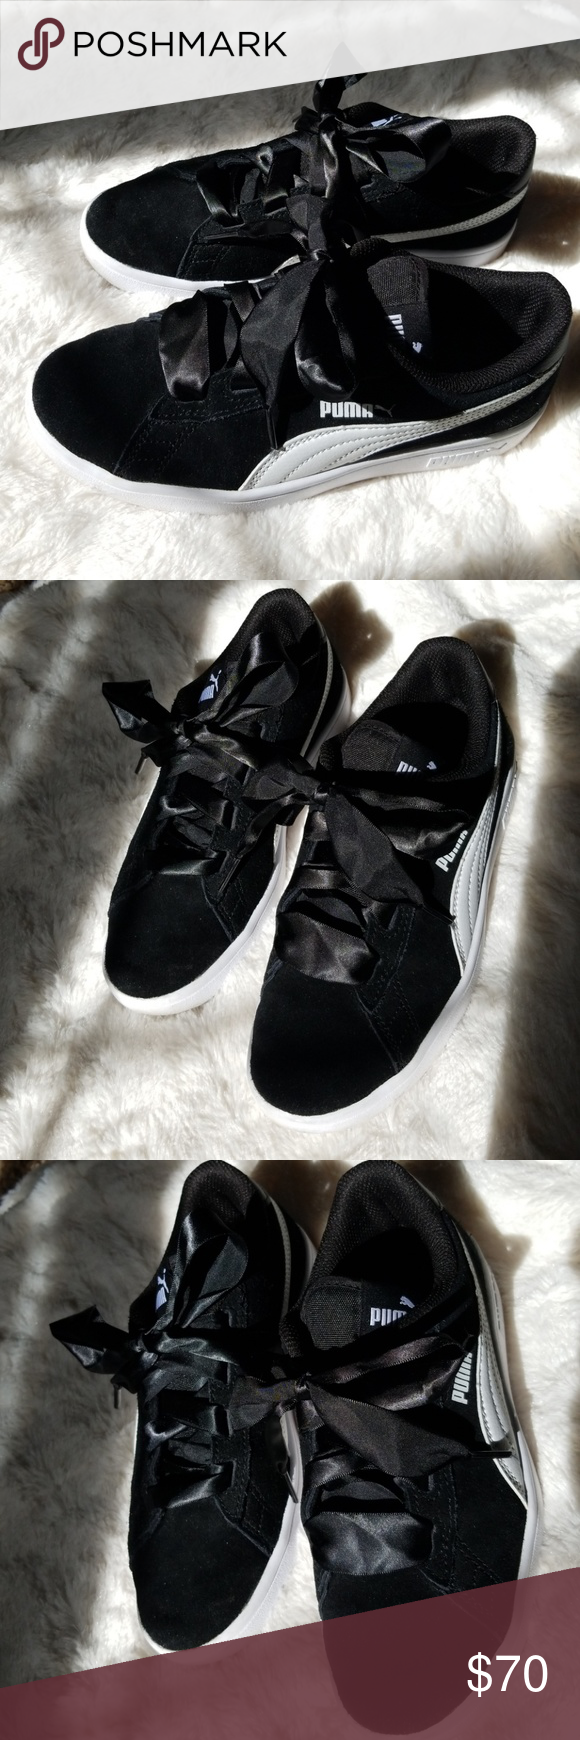 Puma ribbon sneakers Worn once, size 4